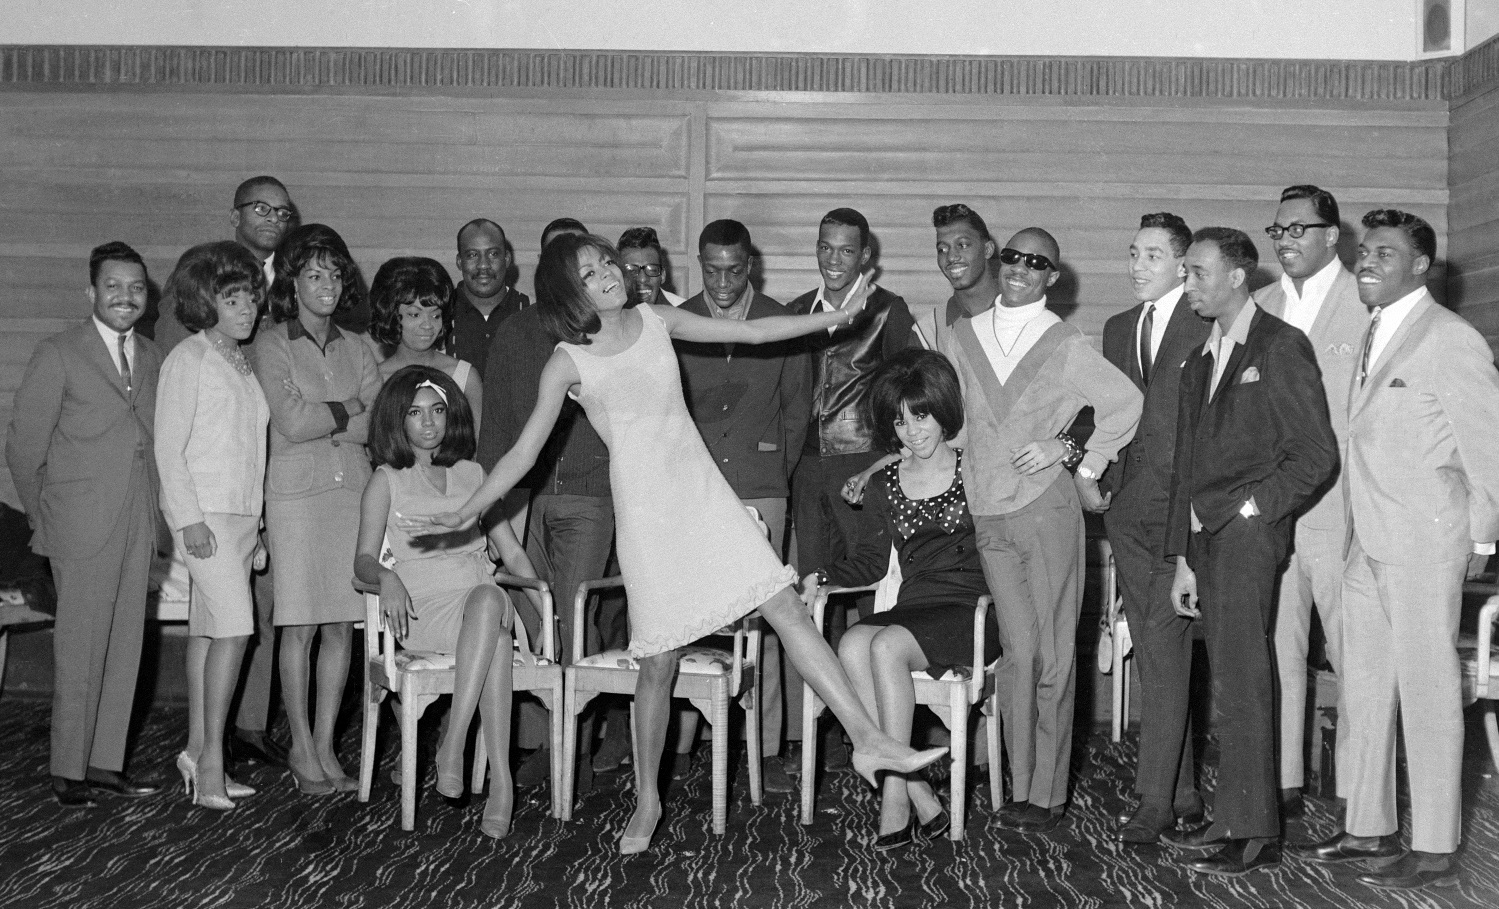 motortown revue group photo spring 1965 2a songbook